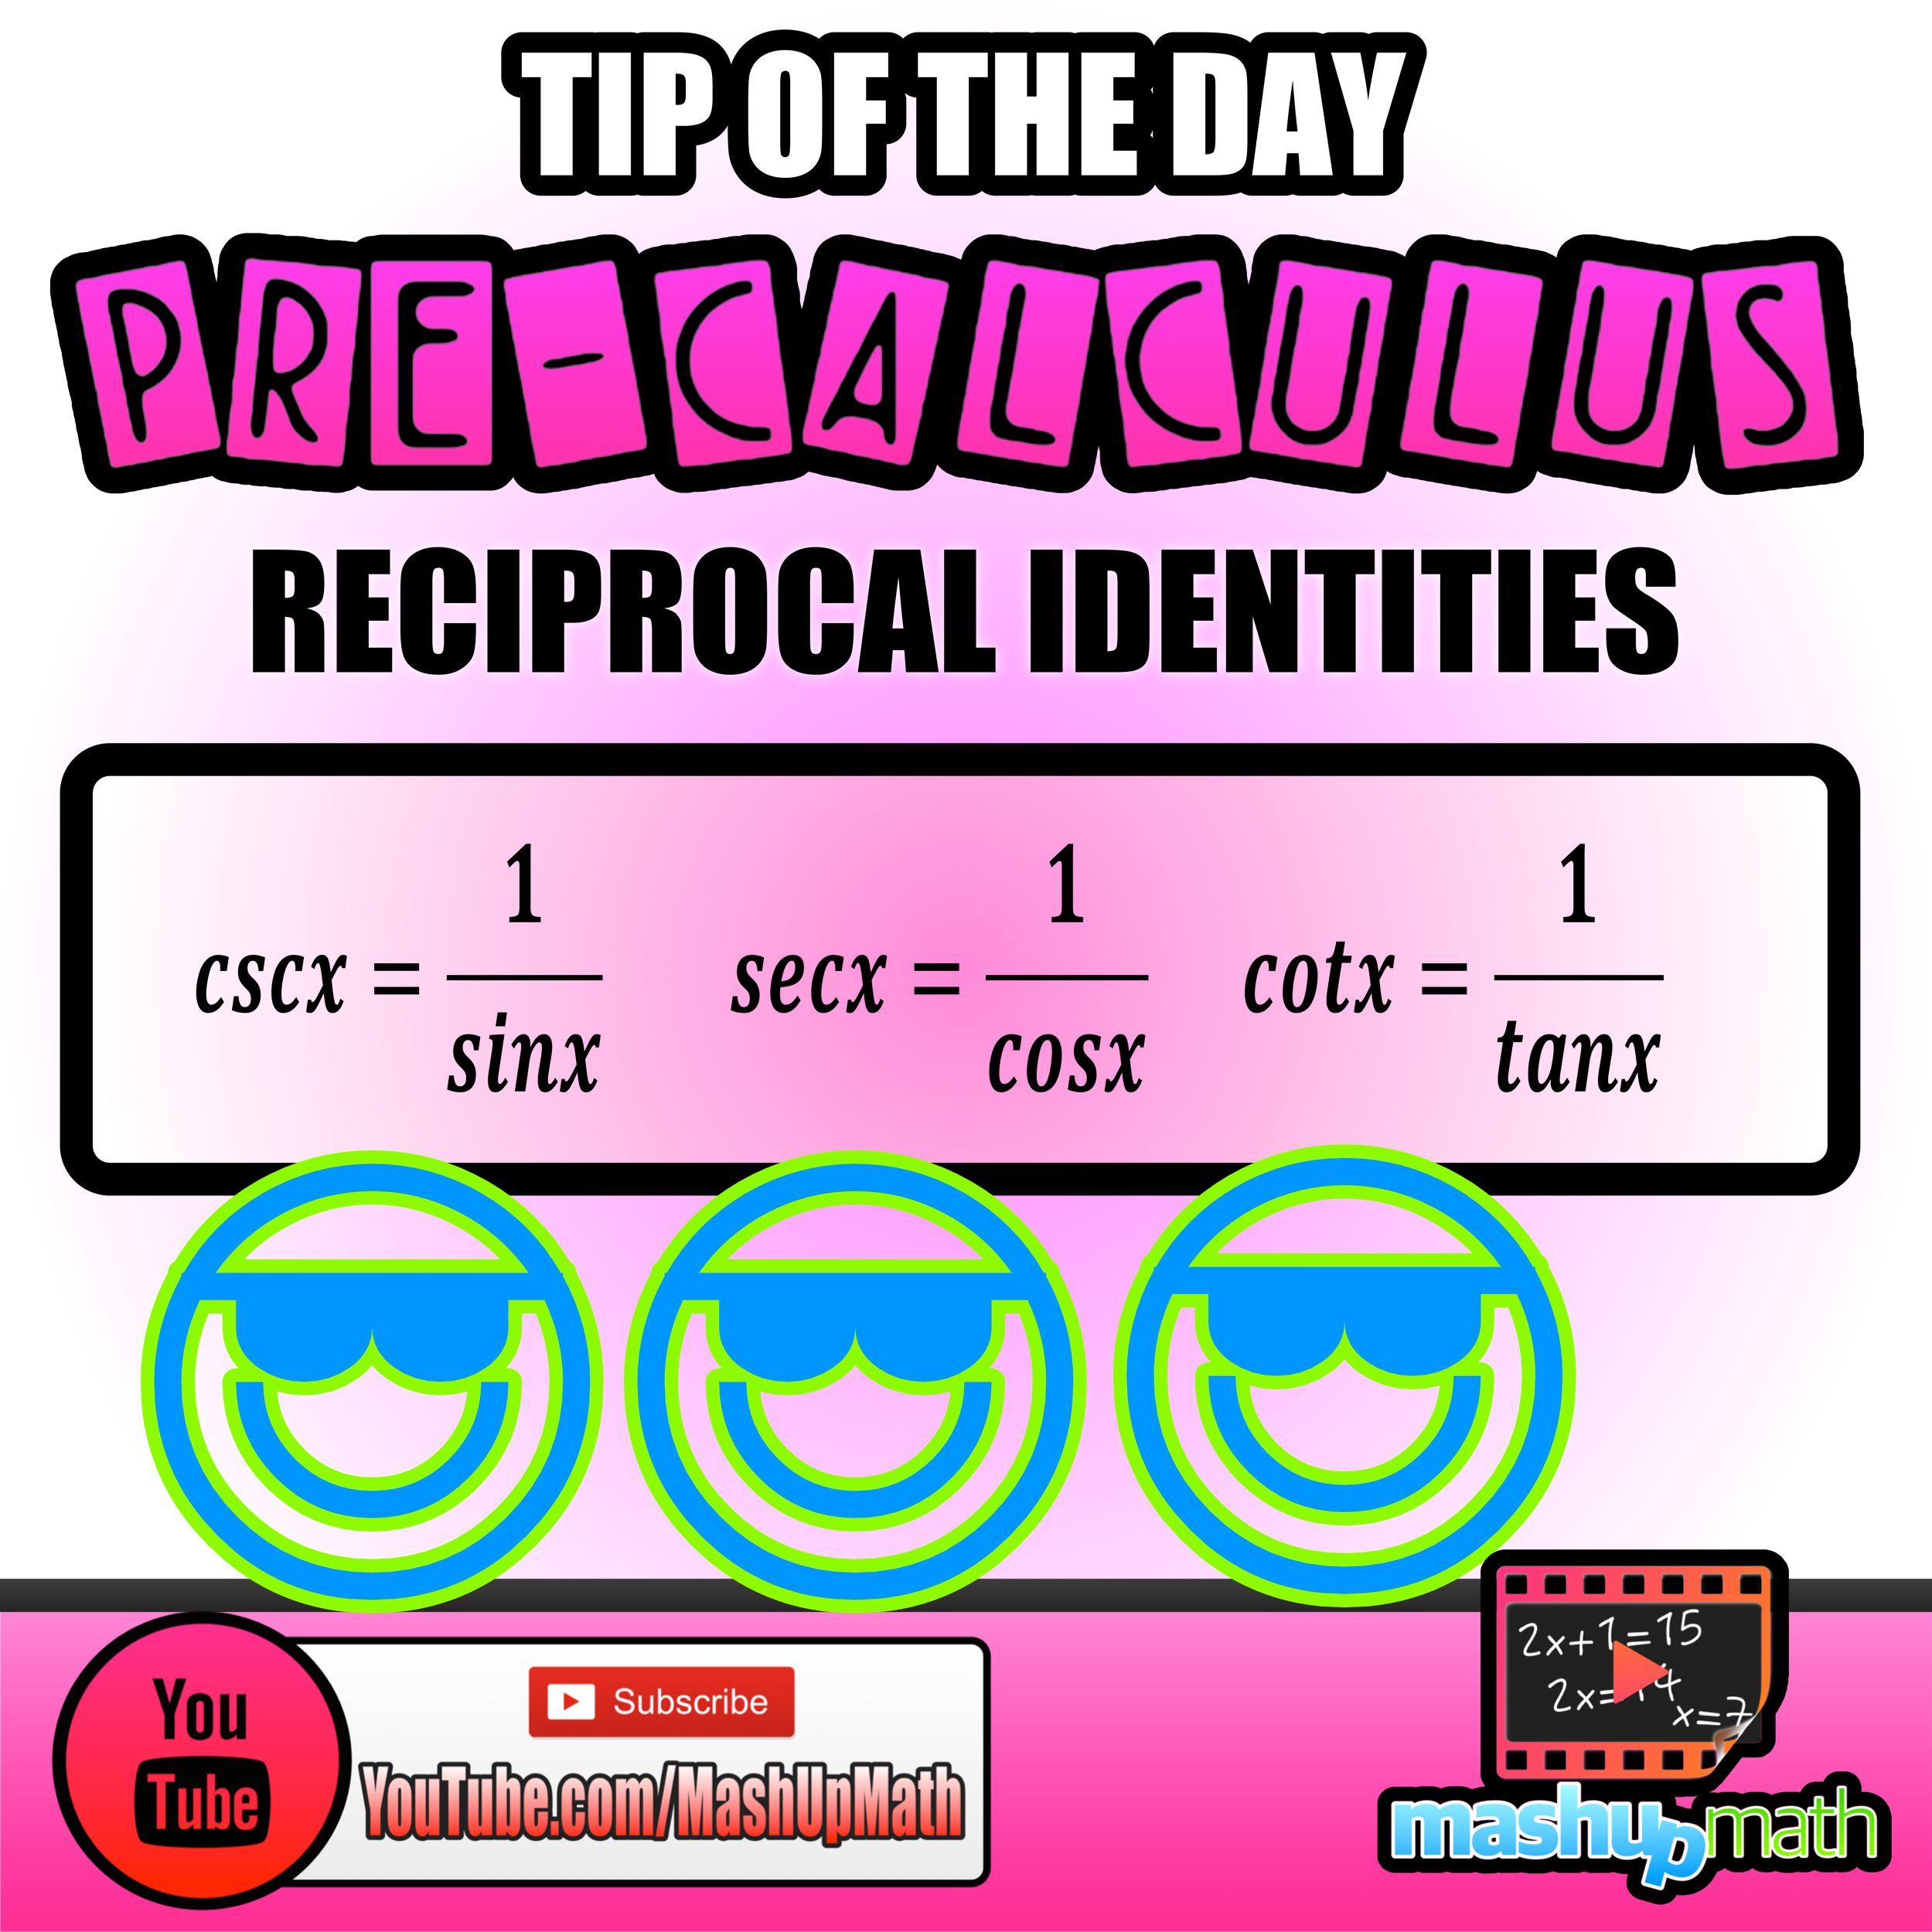 Do You Know The Reciprocal Identities For The Trigonometry